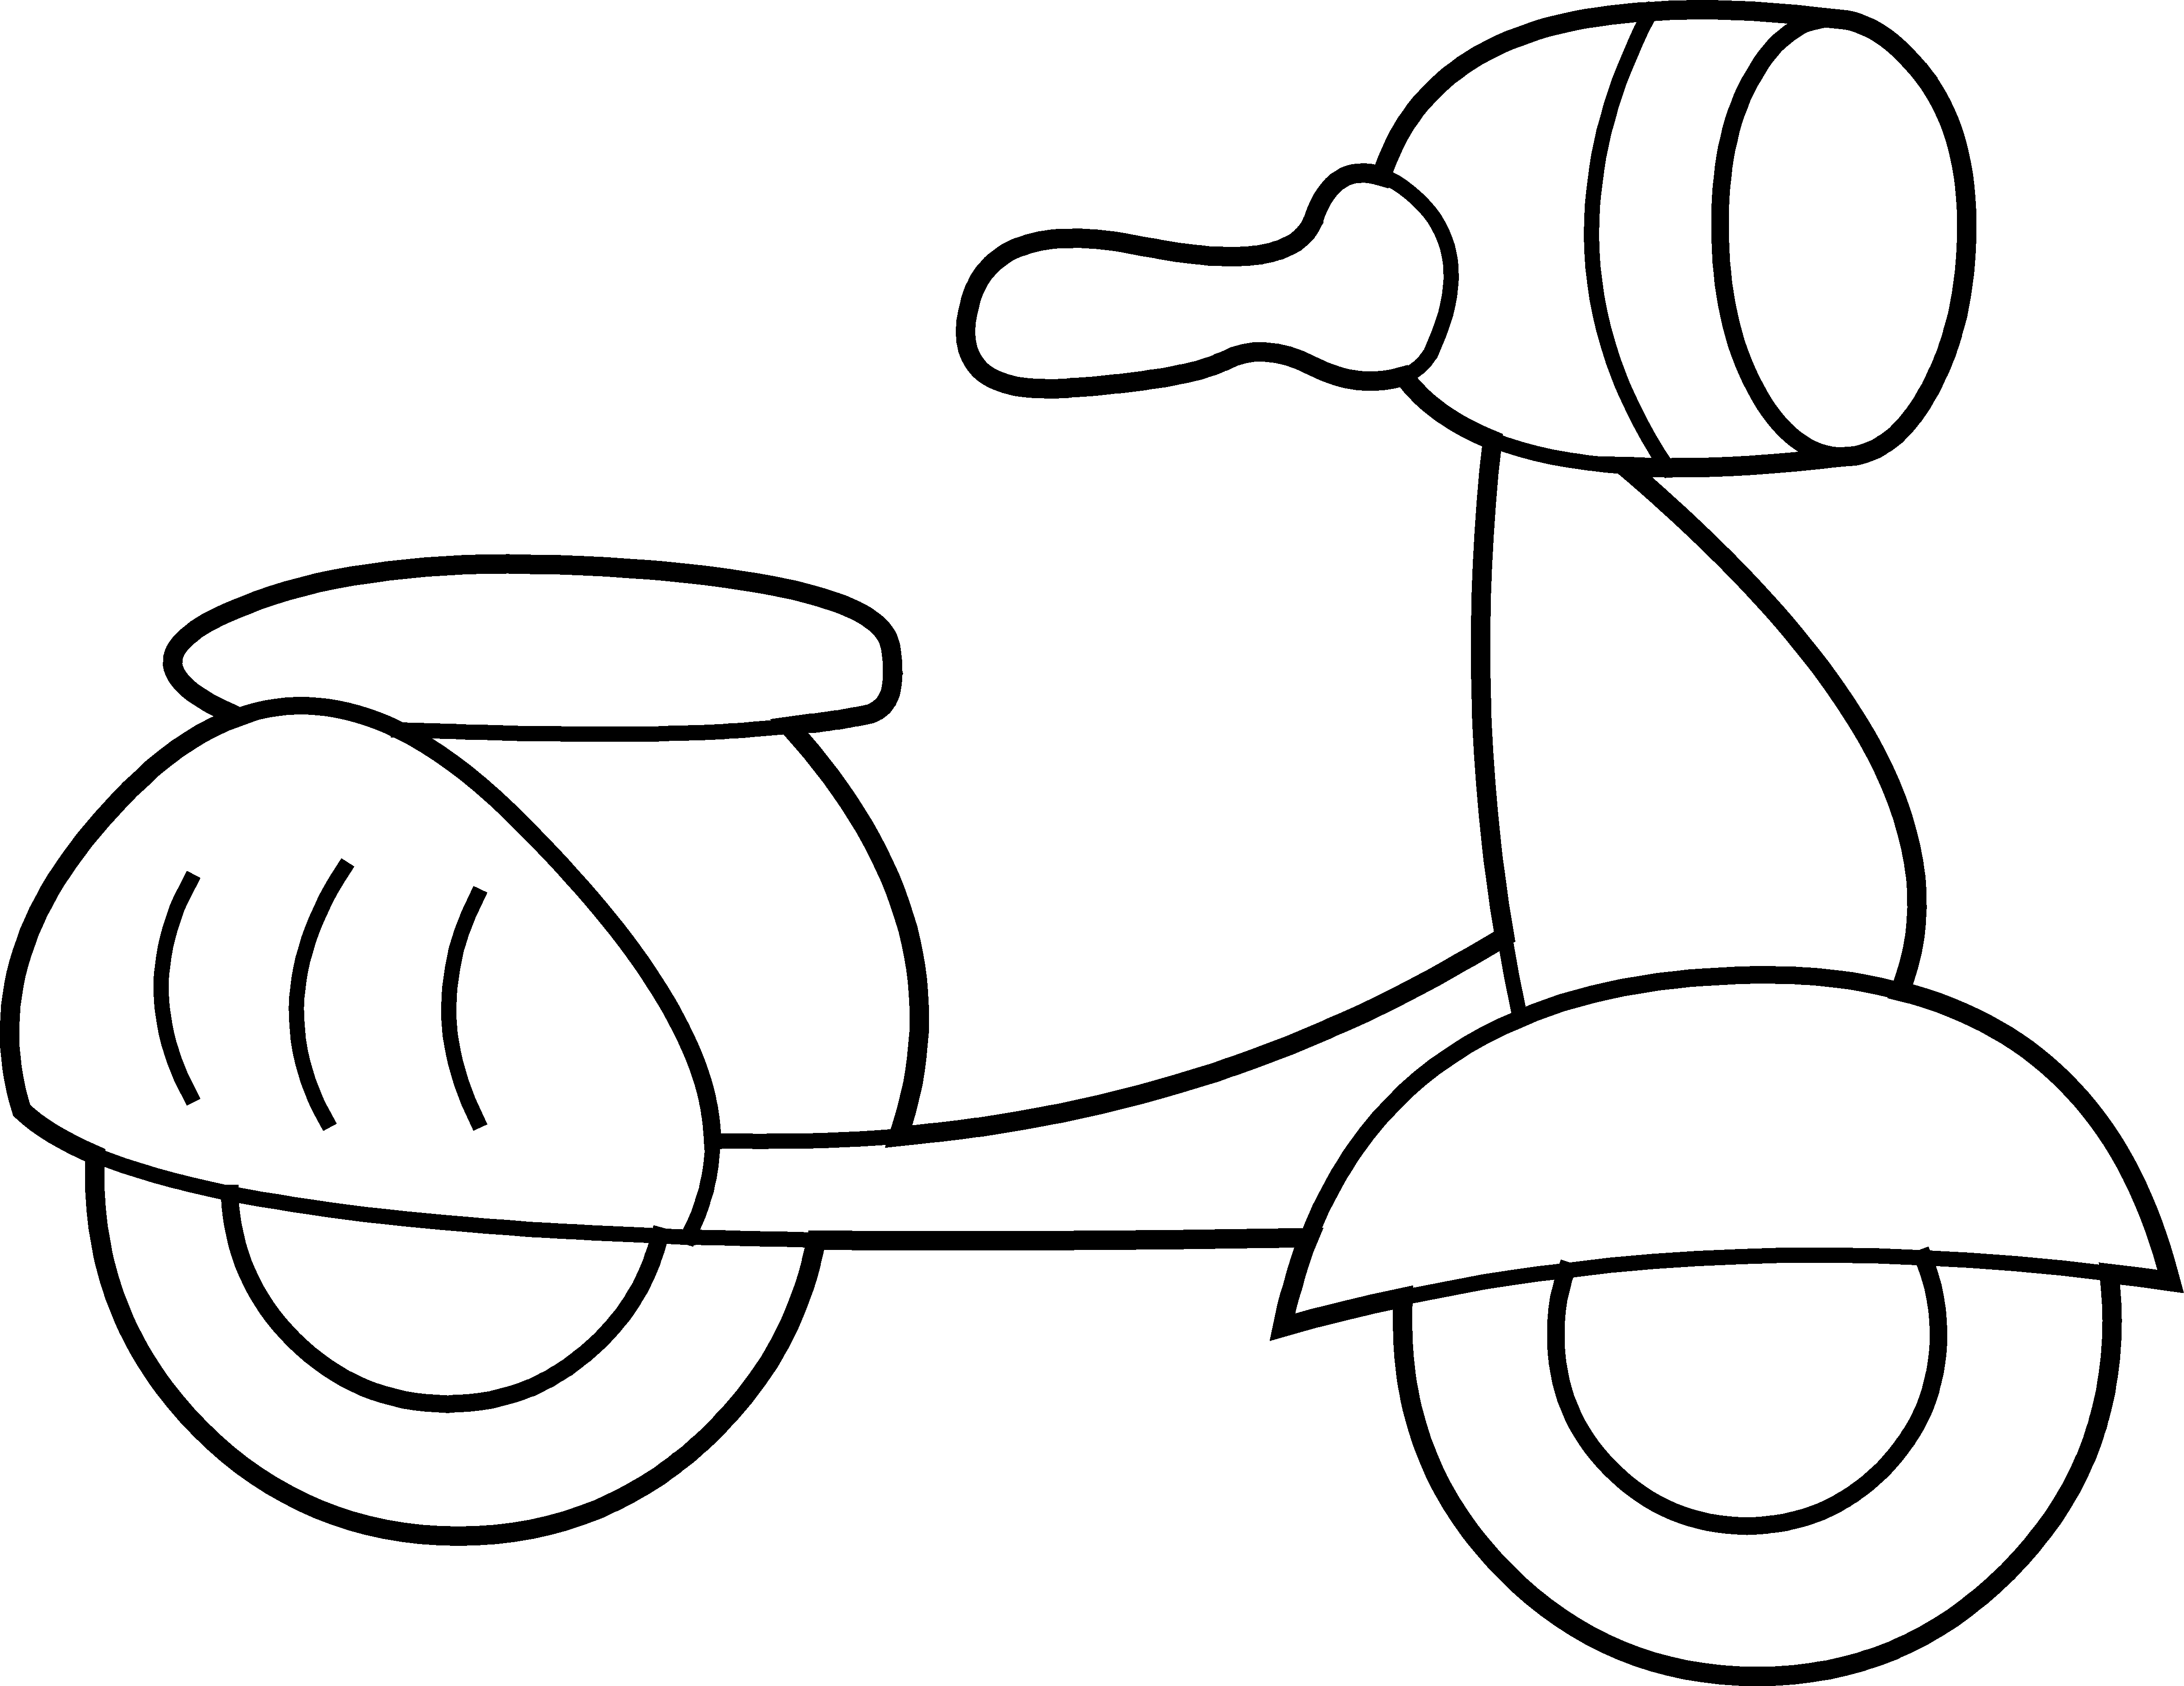 Atv drawing coloring page. Scooter transportation printable pages